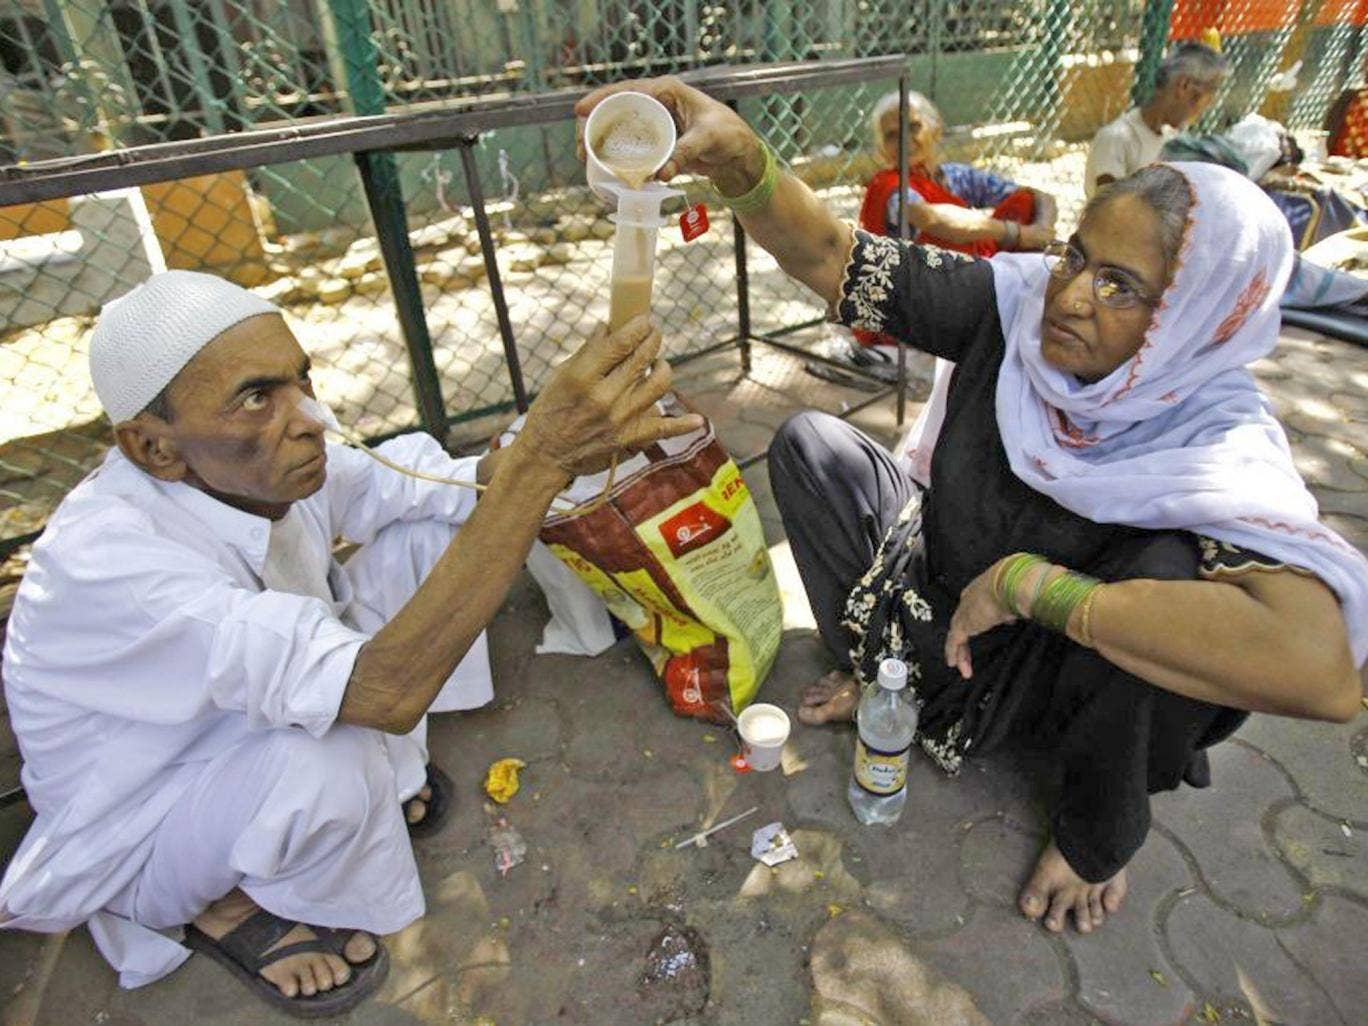 Kamal Ahmad, 68, who is suffering from throat cancer, gets help from a relative to drink tea through his nose outside Tata cancer hospital in Mumbai, India